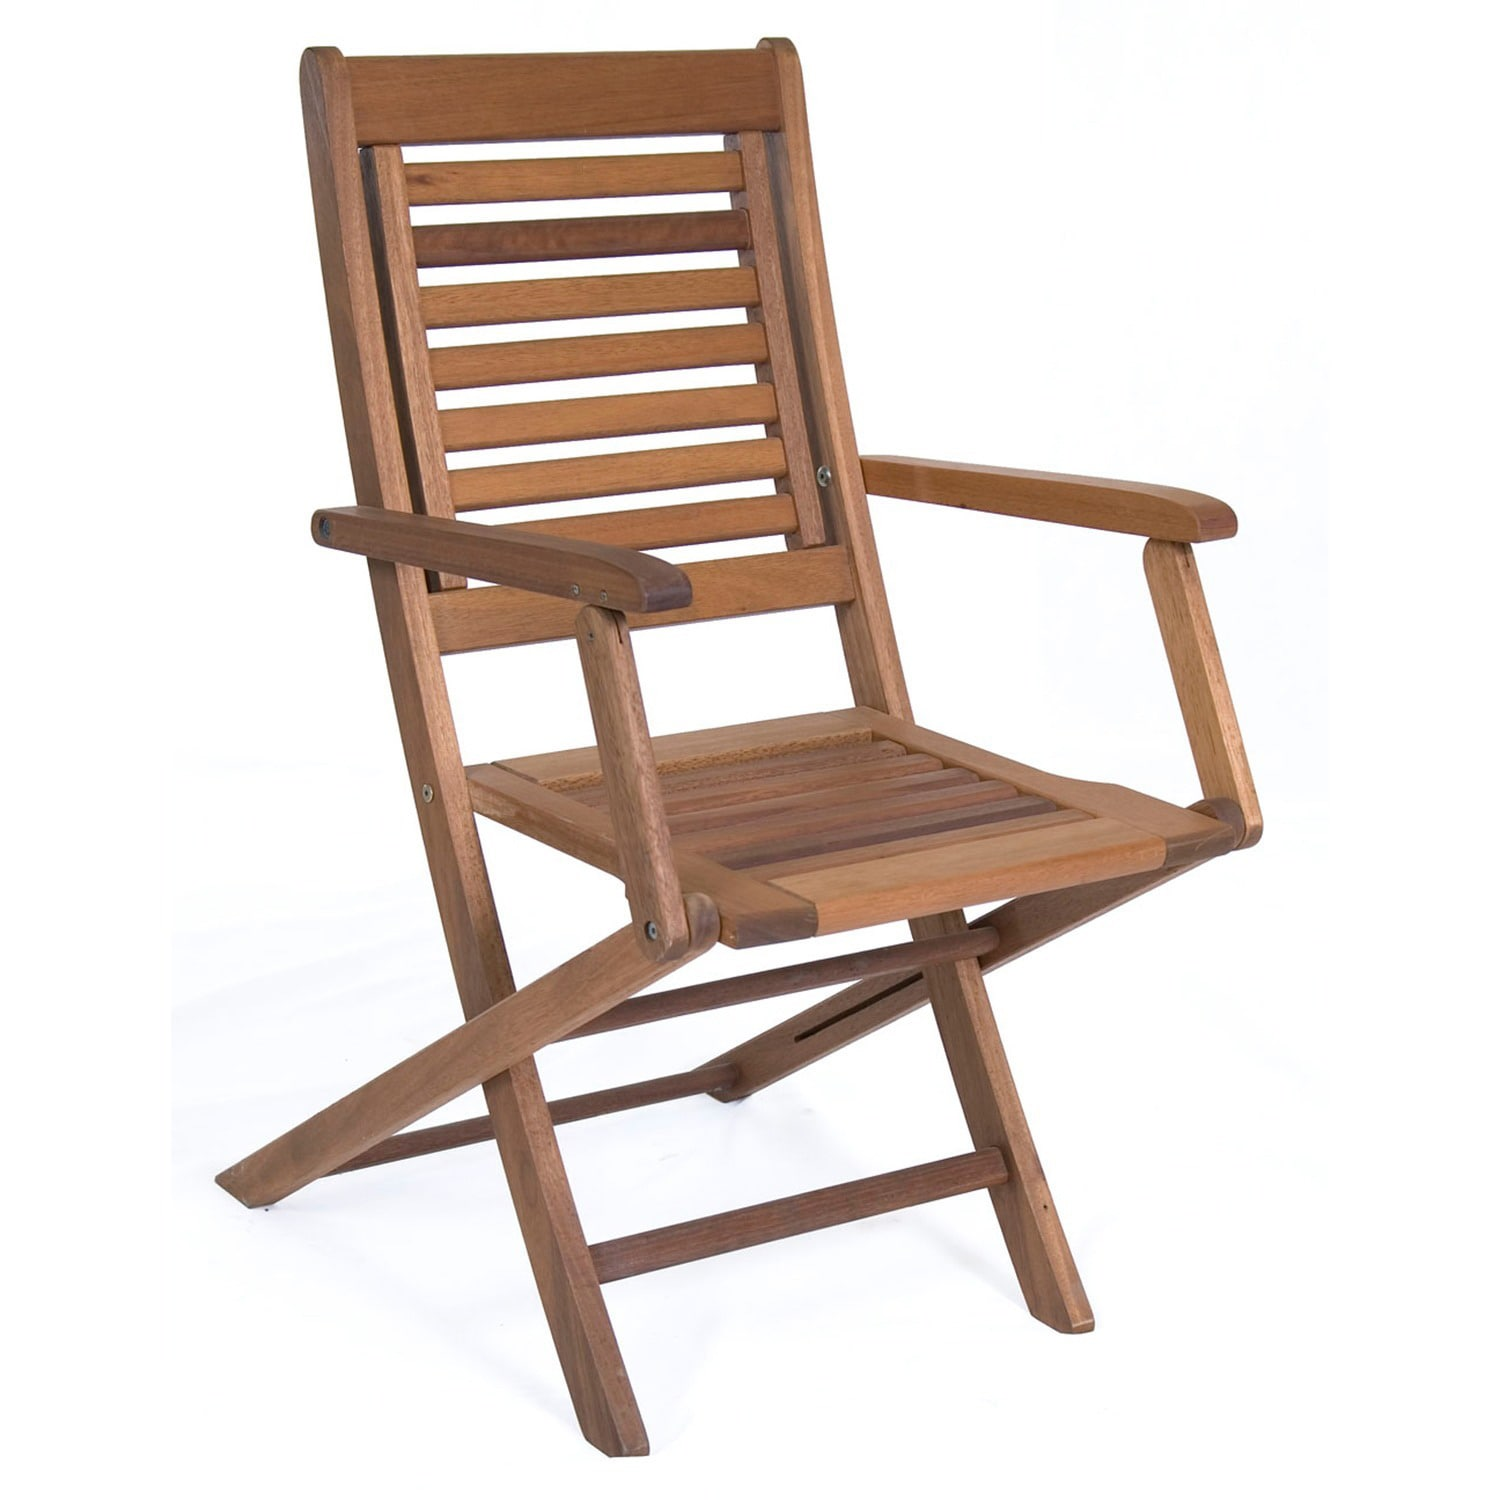 Folding Wooden Chairs Folding Wood Chair